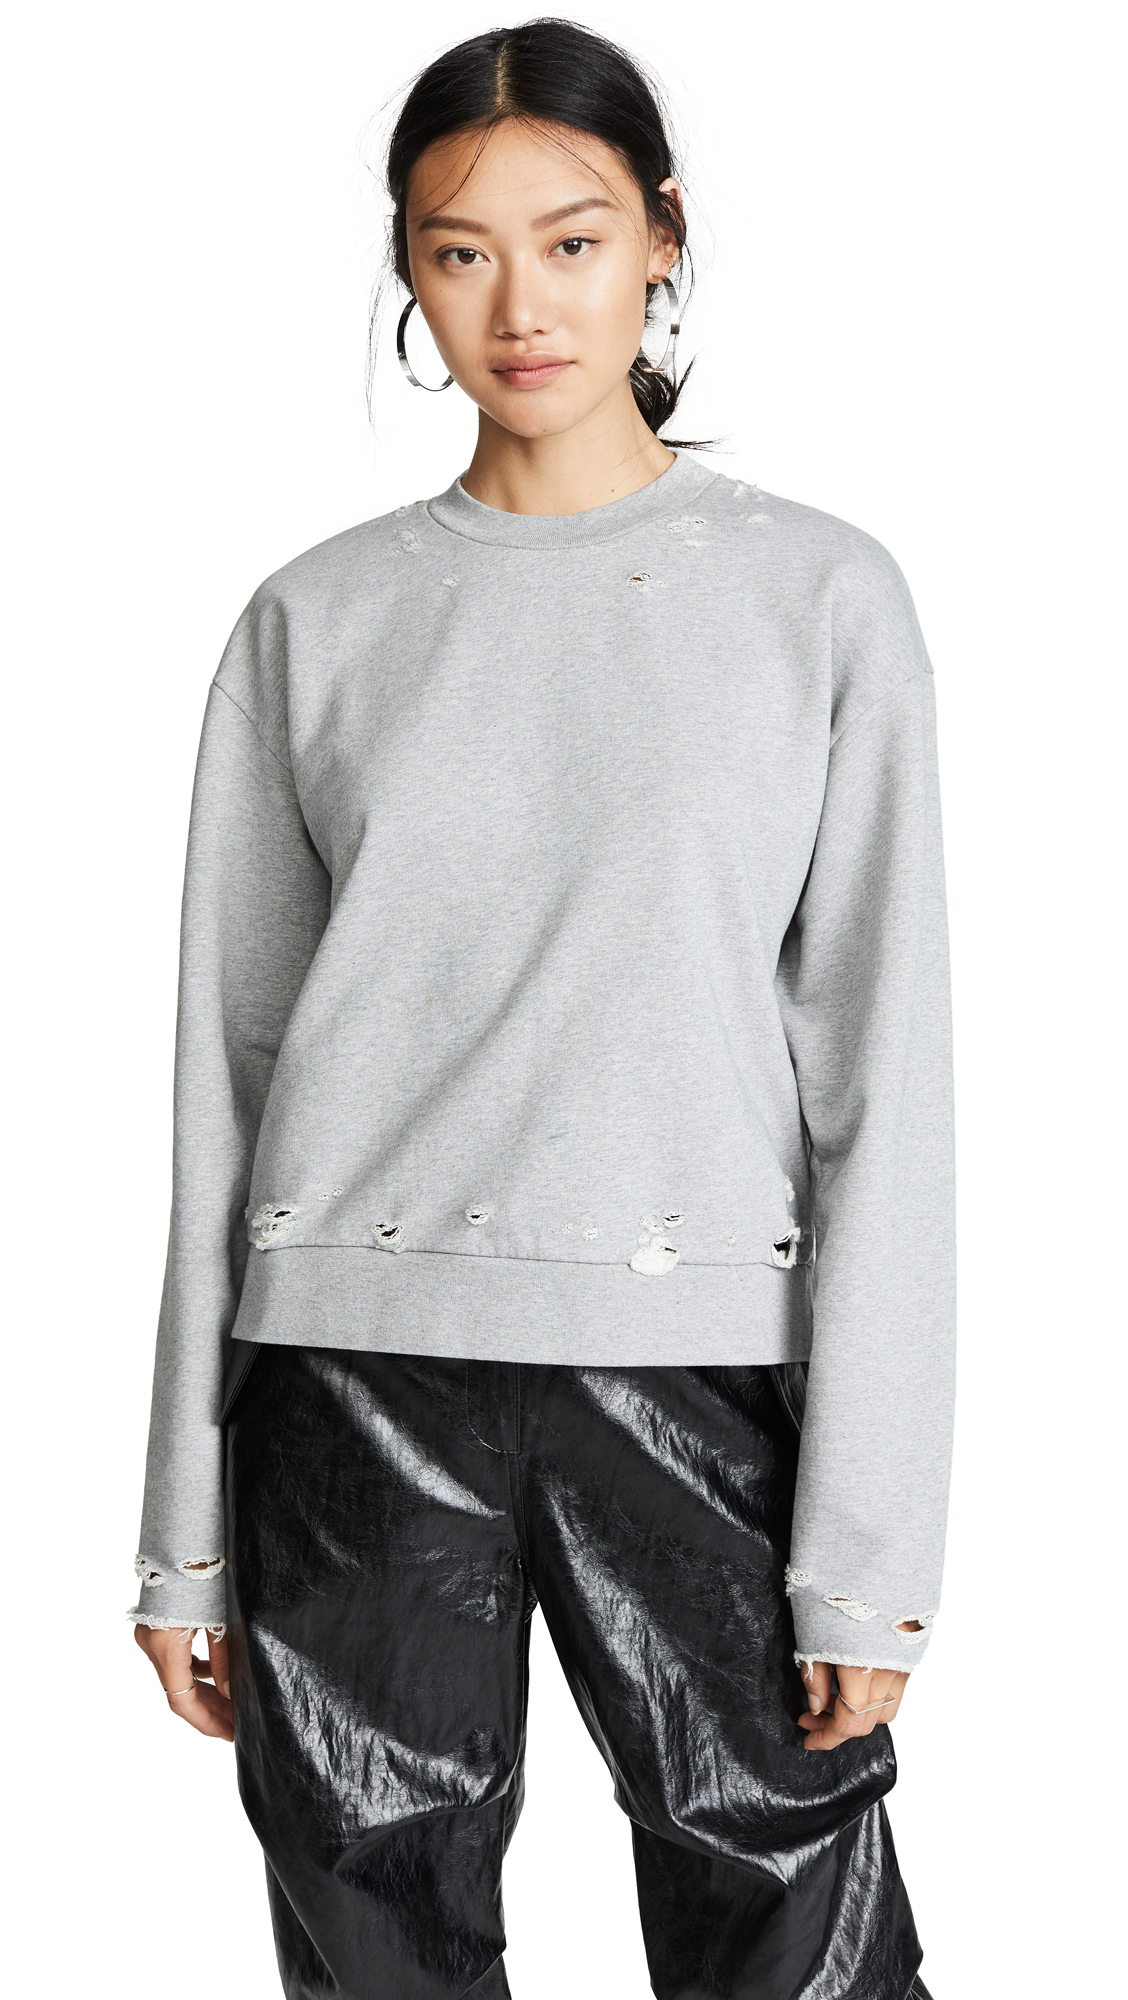 alexanderwang.t Dry French Terry Distressed Sweatshirt - Heather Grey